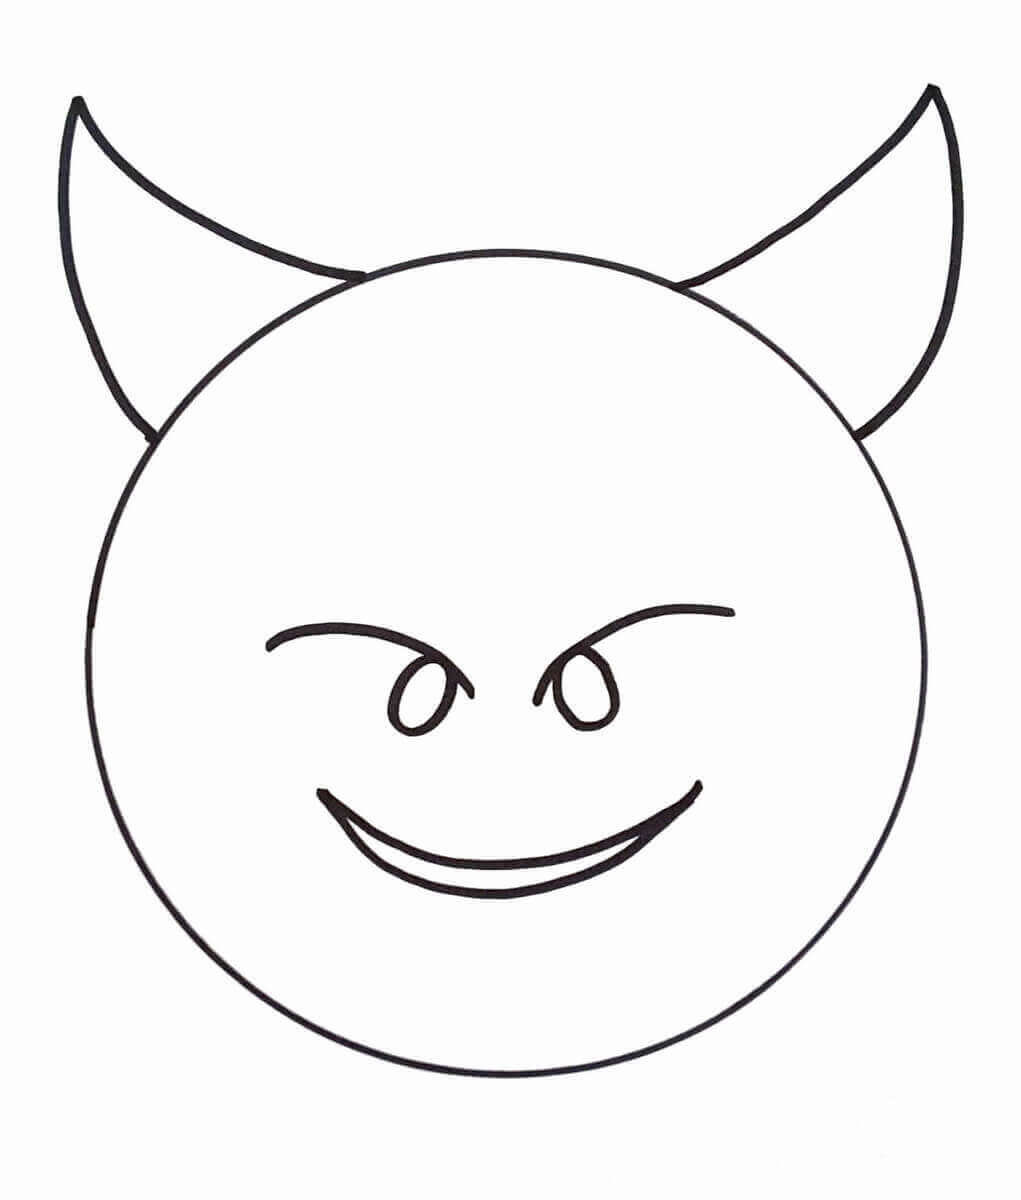 Devil Emoji Coloring Picture Free Printable